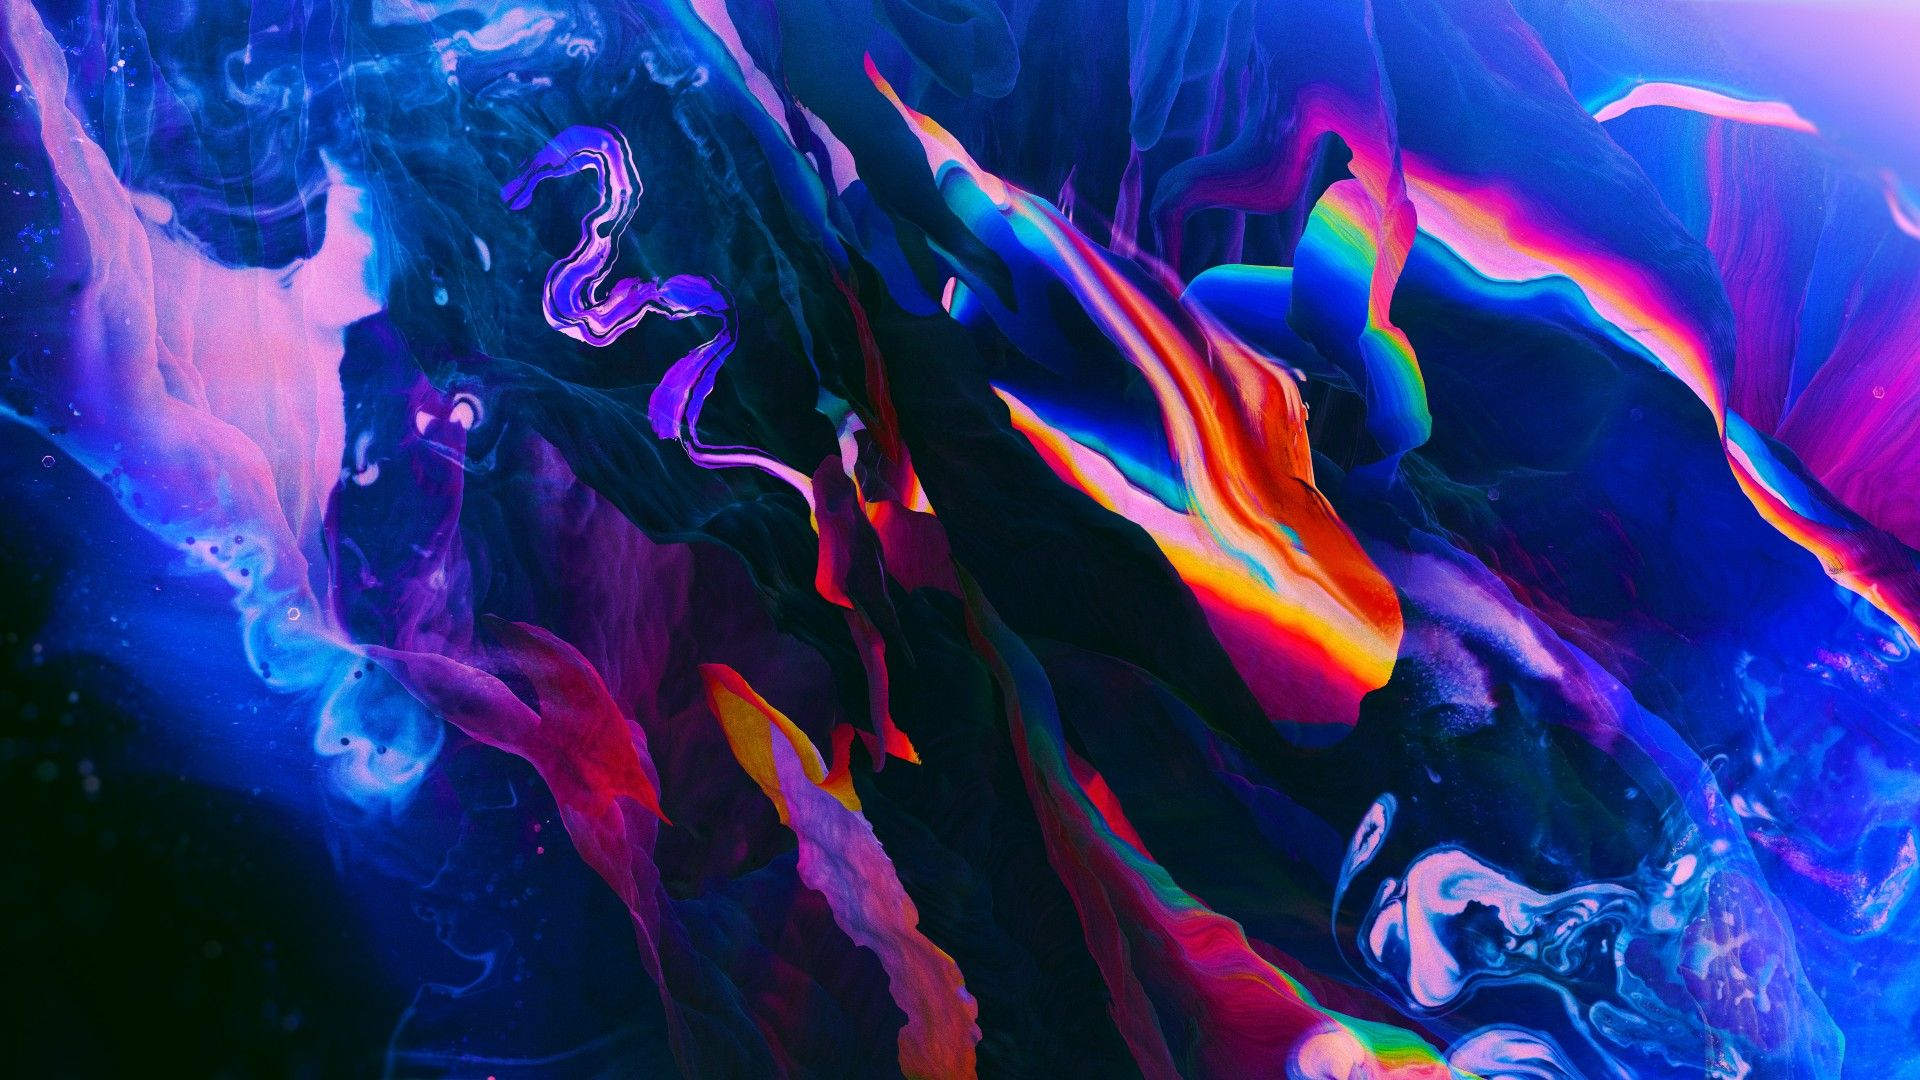 Colorful Abstract Abstract Art Wallpaper Computer Wallpaper Desktop Wallpapers Art Wallpaper